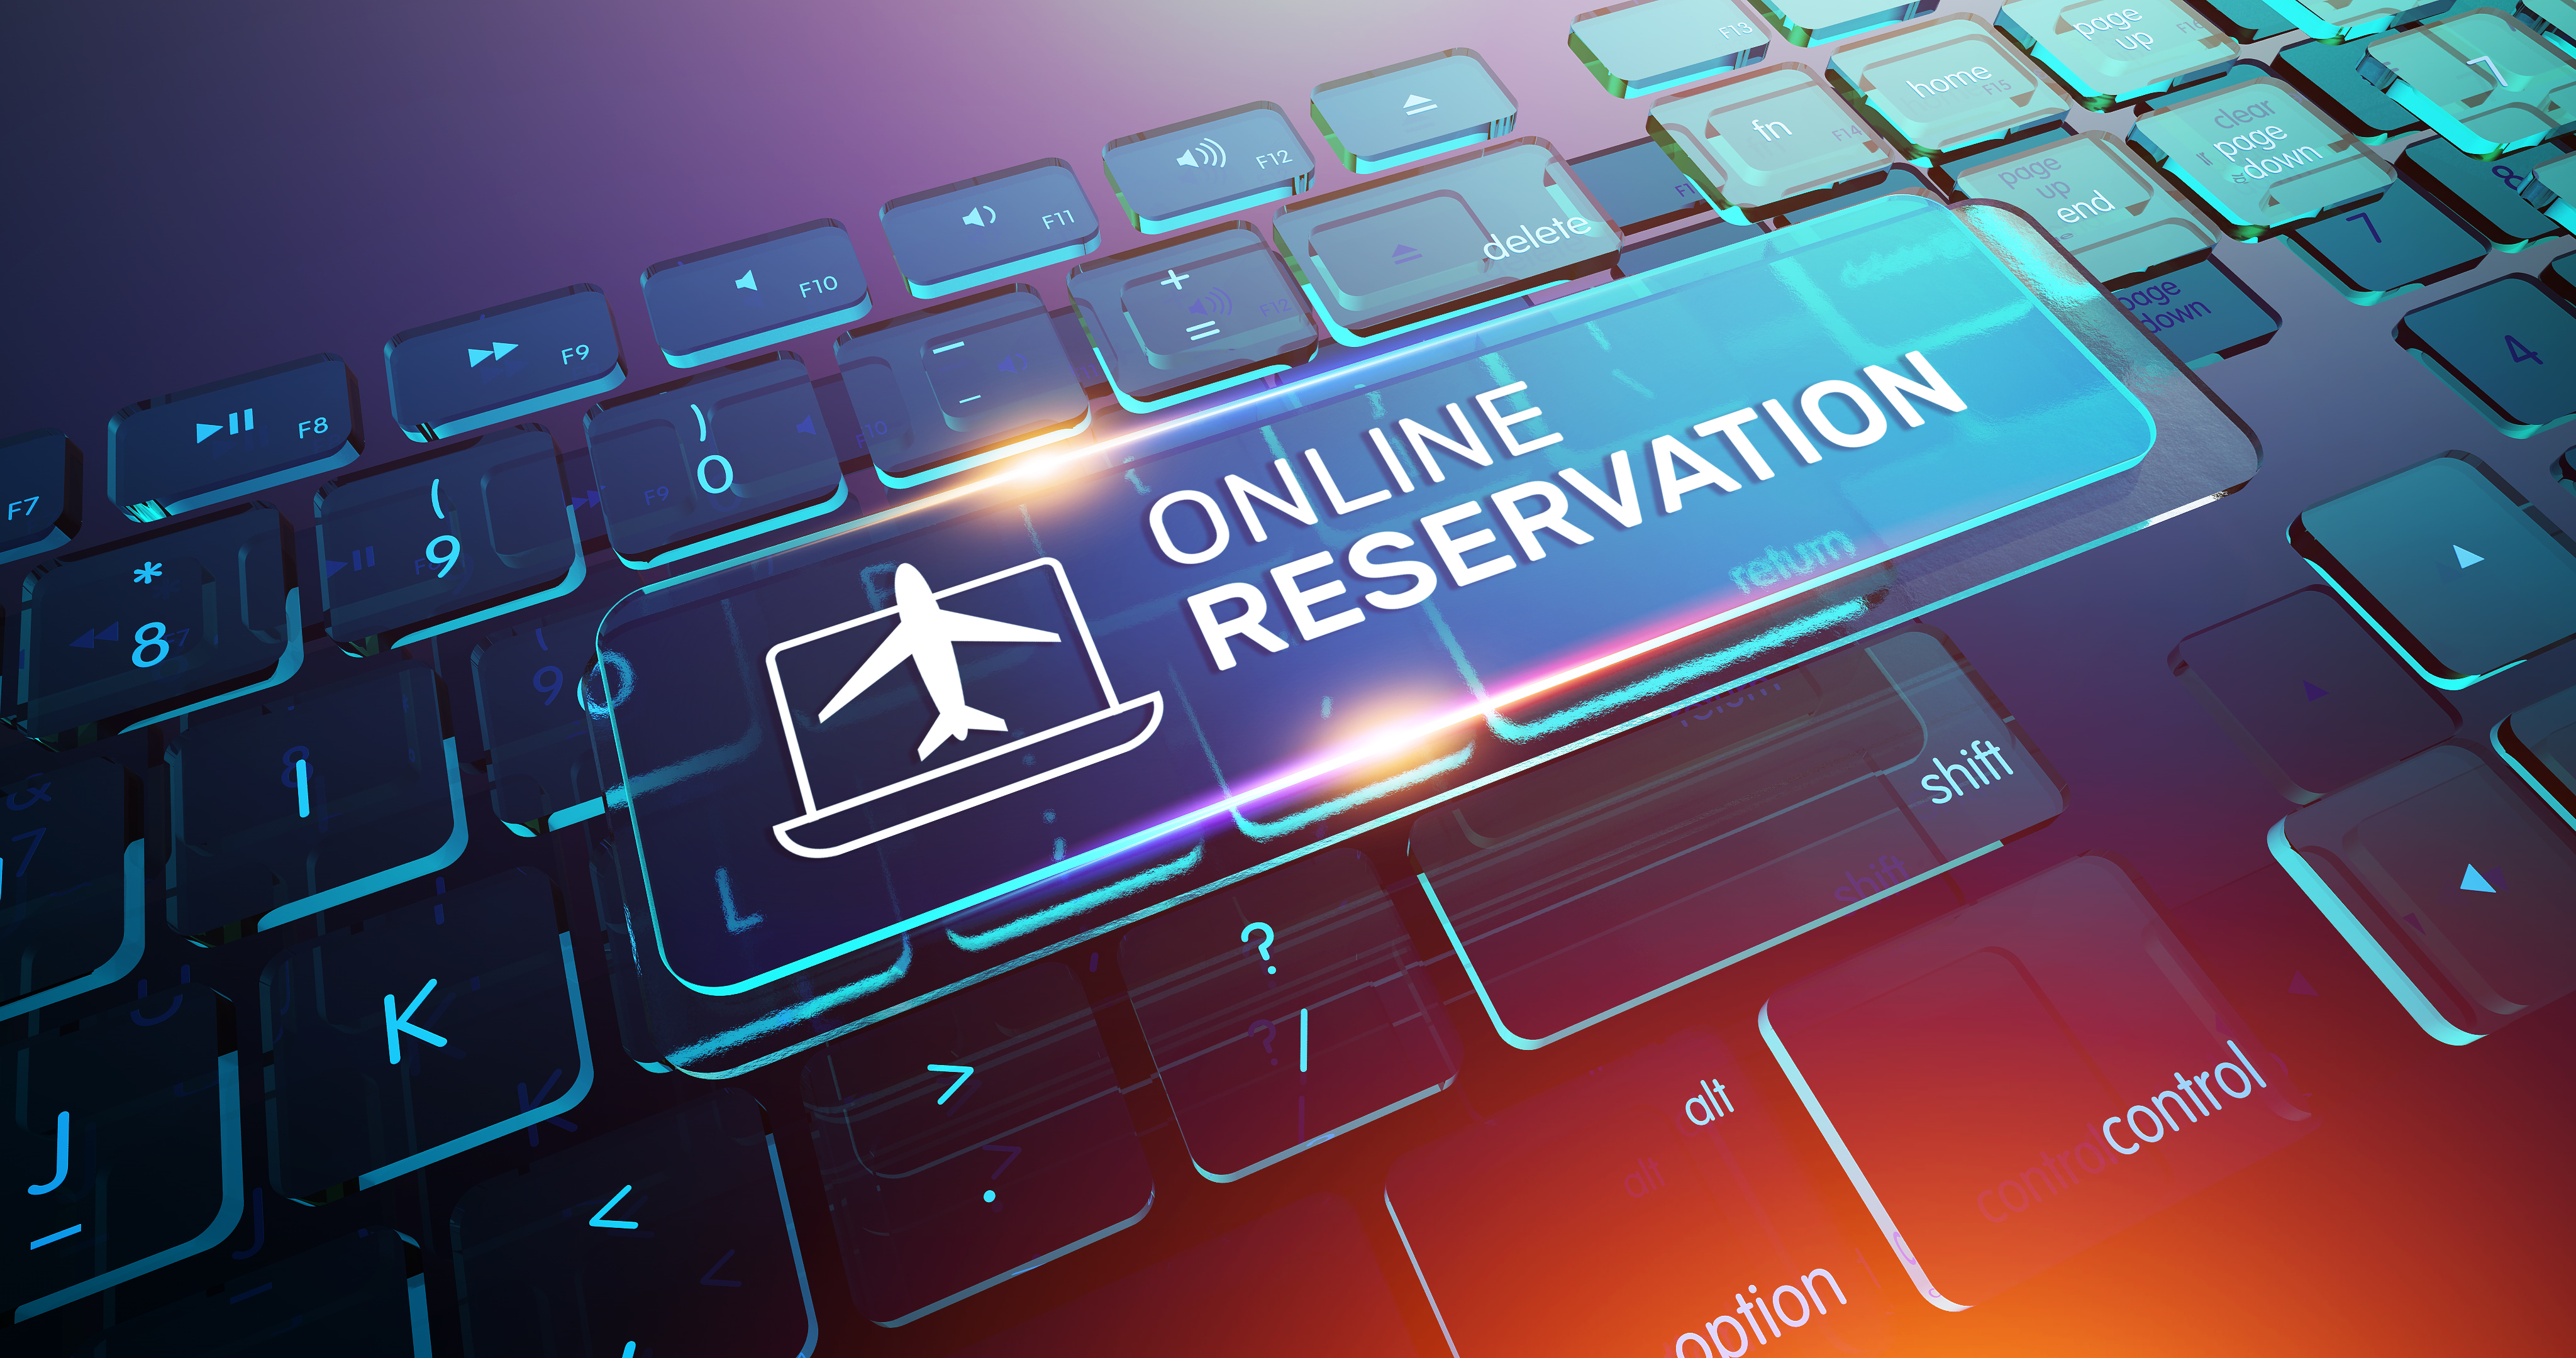 In 2017, a report by Deutsche Bank Ag said that 19 per cent of hotel bookings had moved online and forecast that by 2020, 28 per cent would move online. It said that 78 per cent of these bookings would be done through OTAs.